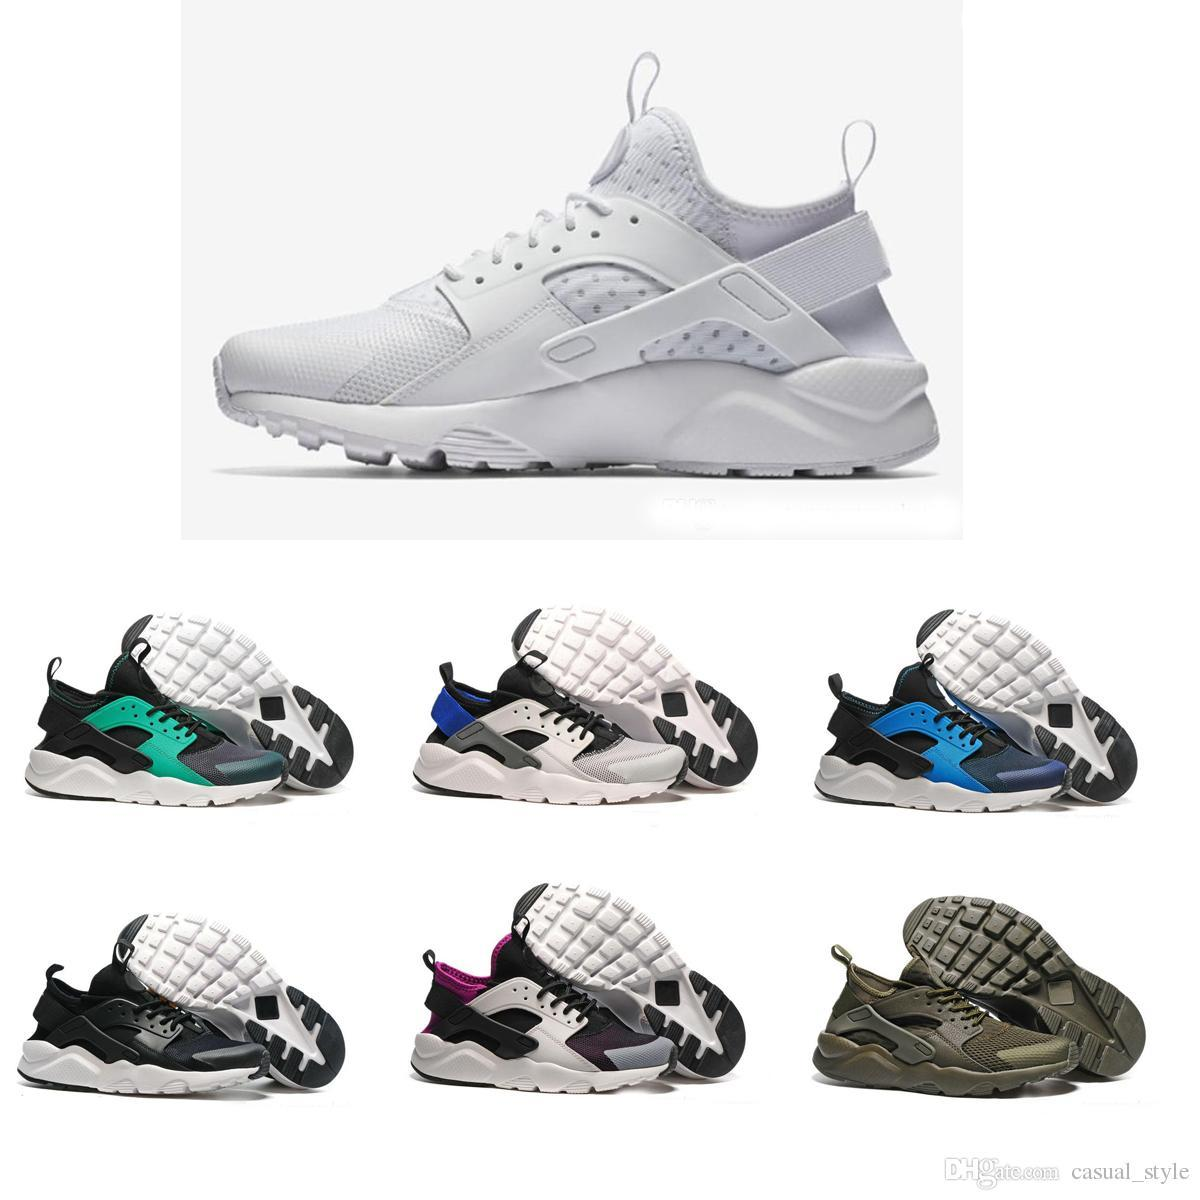 ad061c67013b 2018 New Colors Huaraches 4 IV Casual Shoes For Men   Women